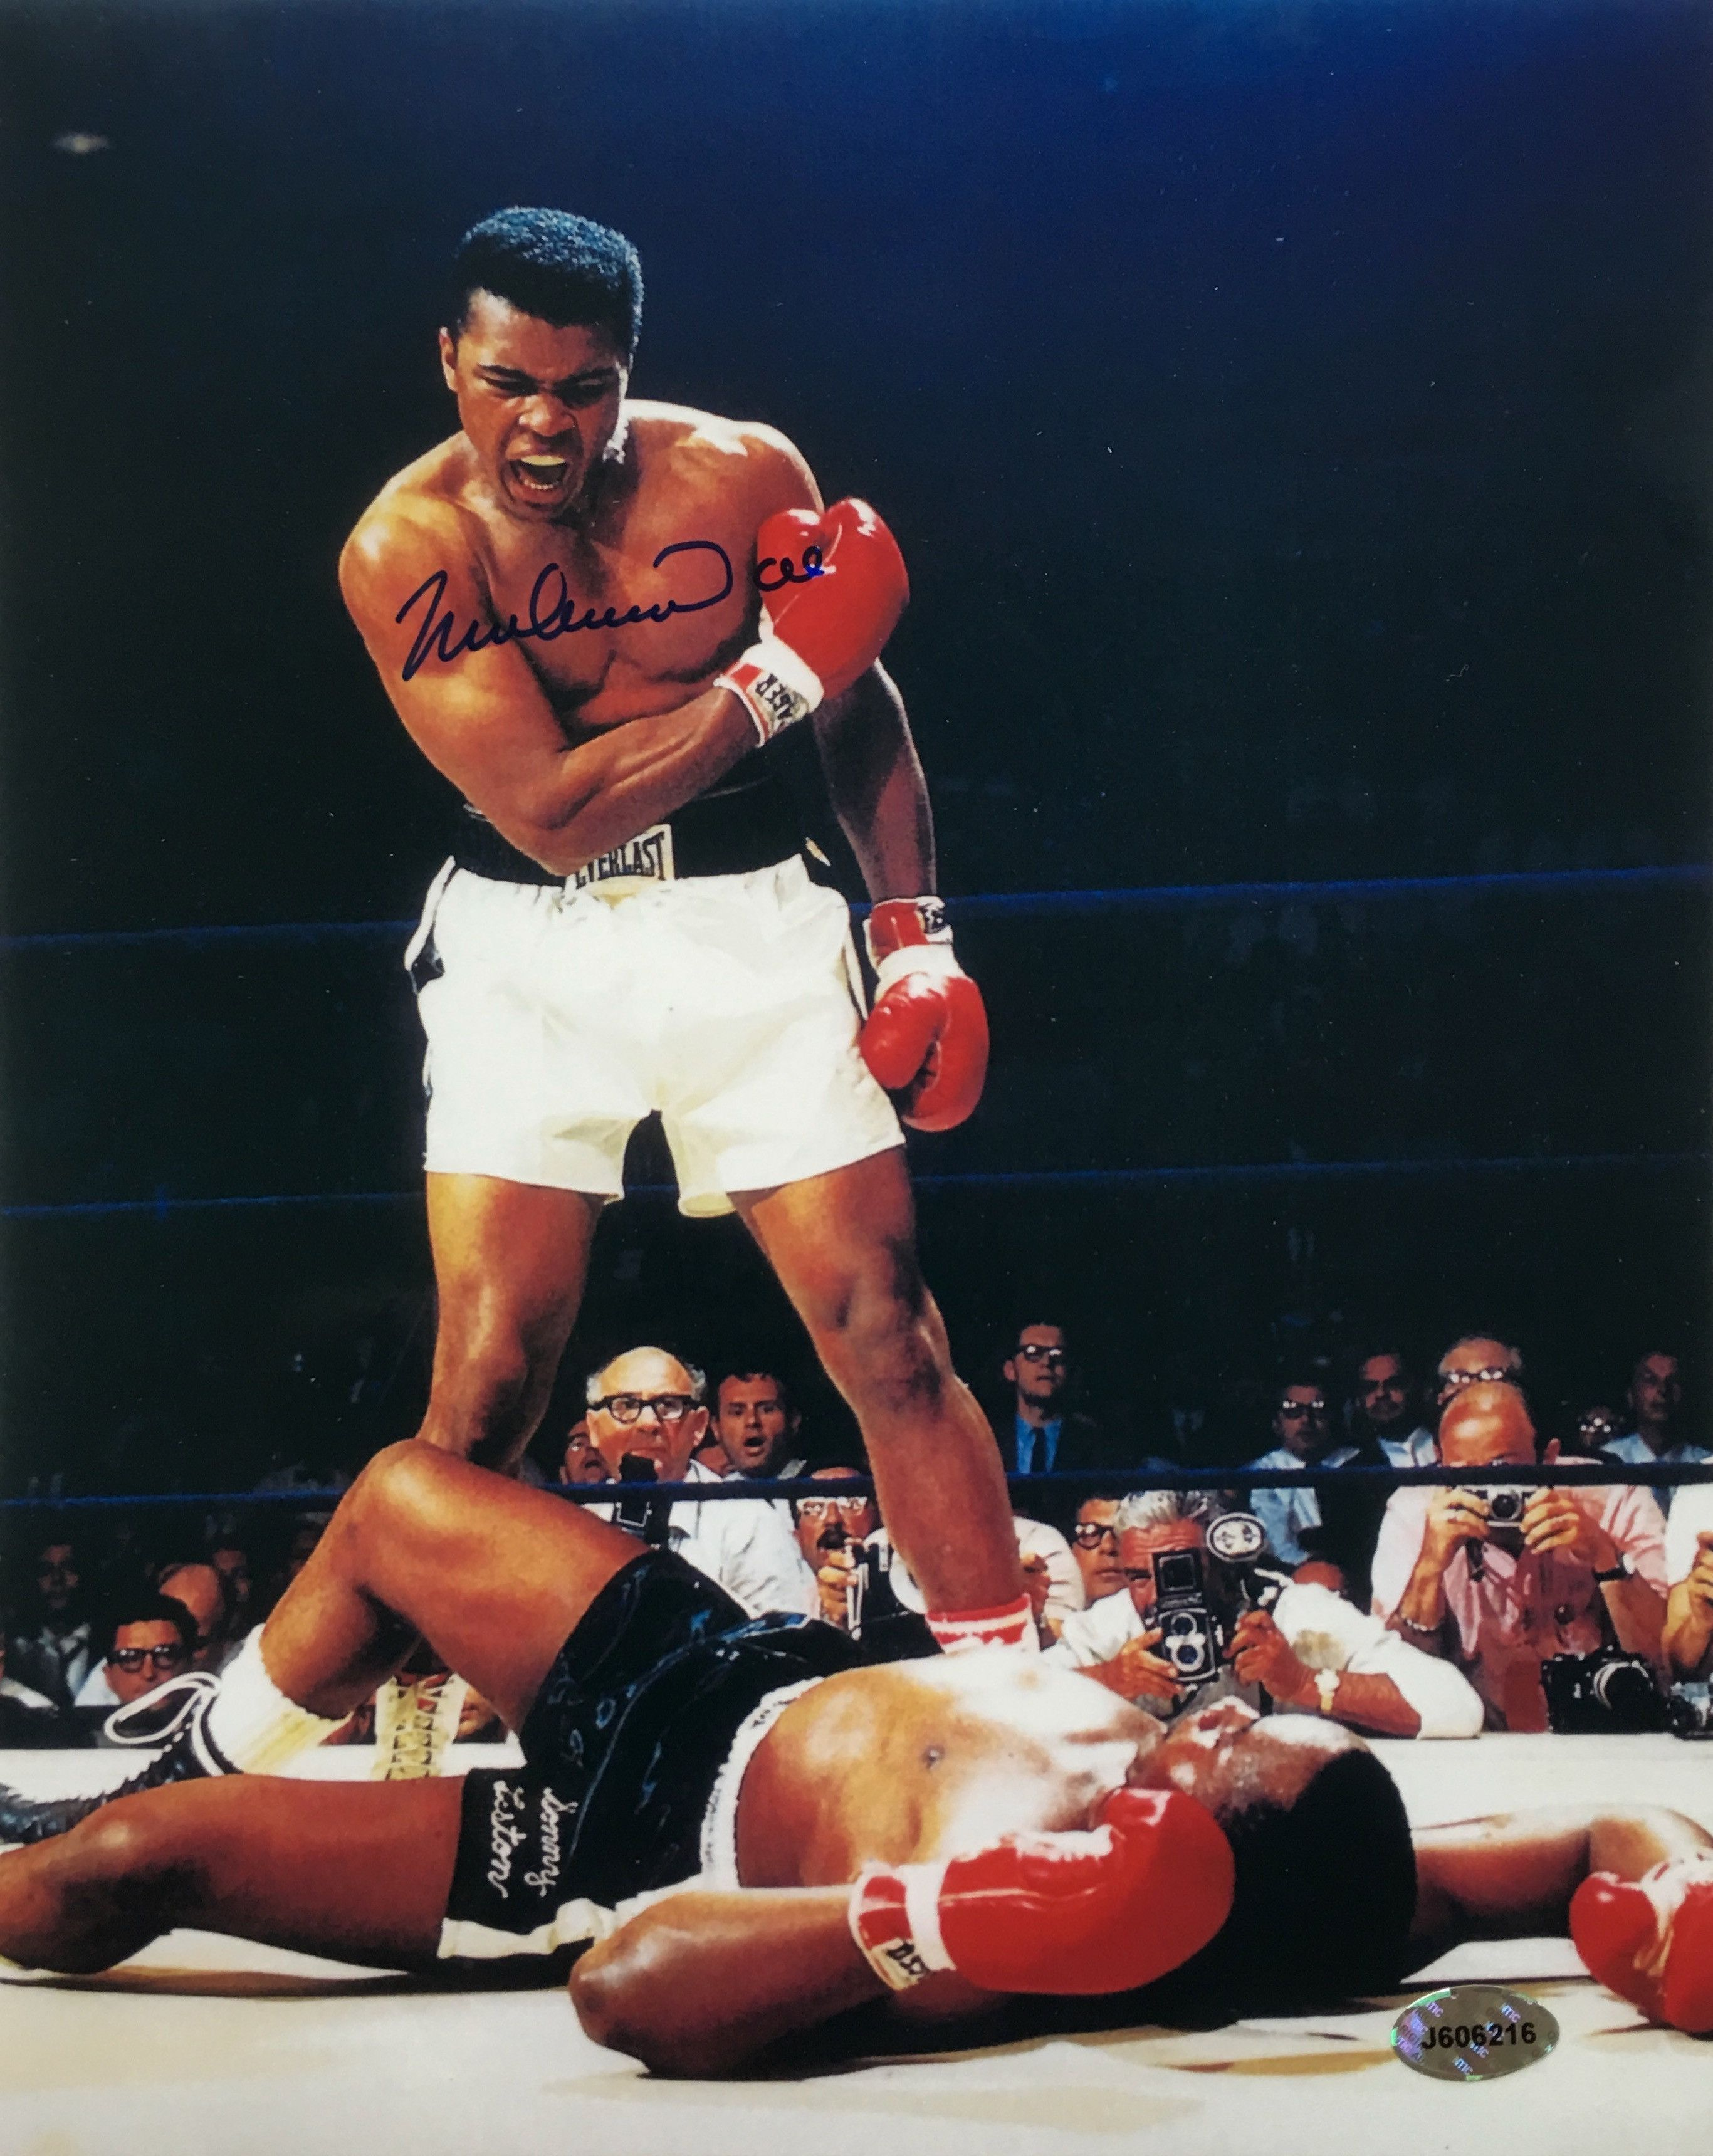 Beautifully hand signed 8x10 photo featuring the autograph of the legend muhammad ali this iconic photo is of ali standing over sonny liston after a